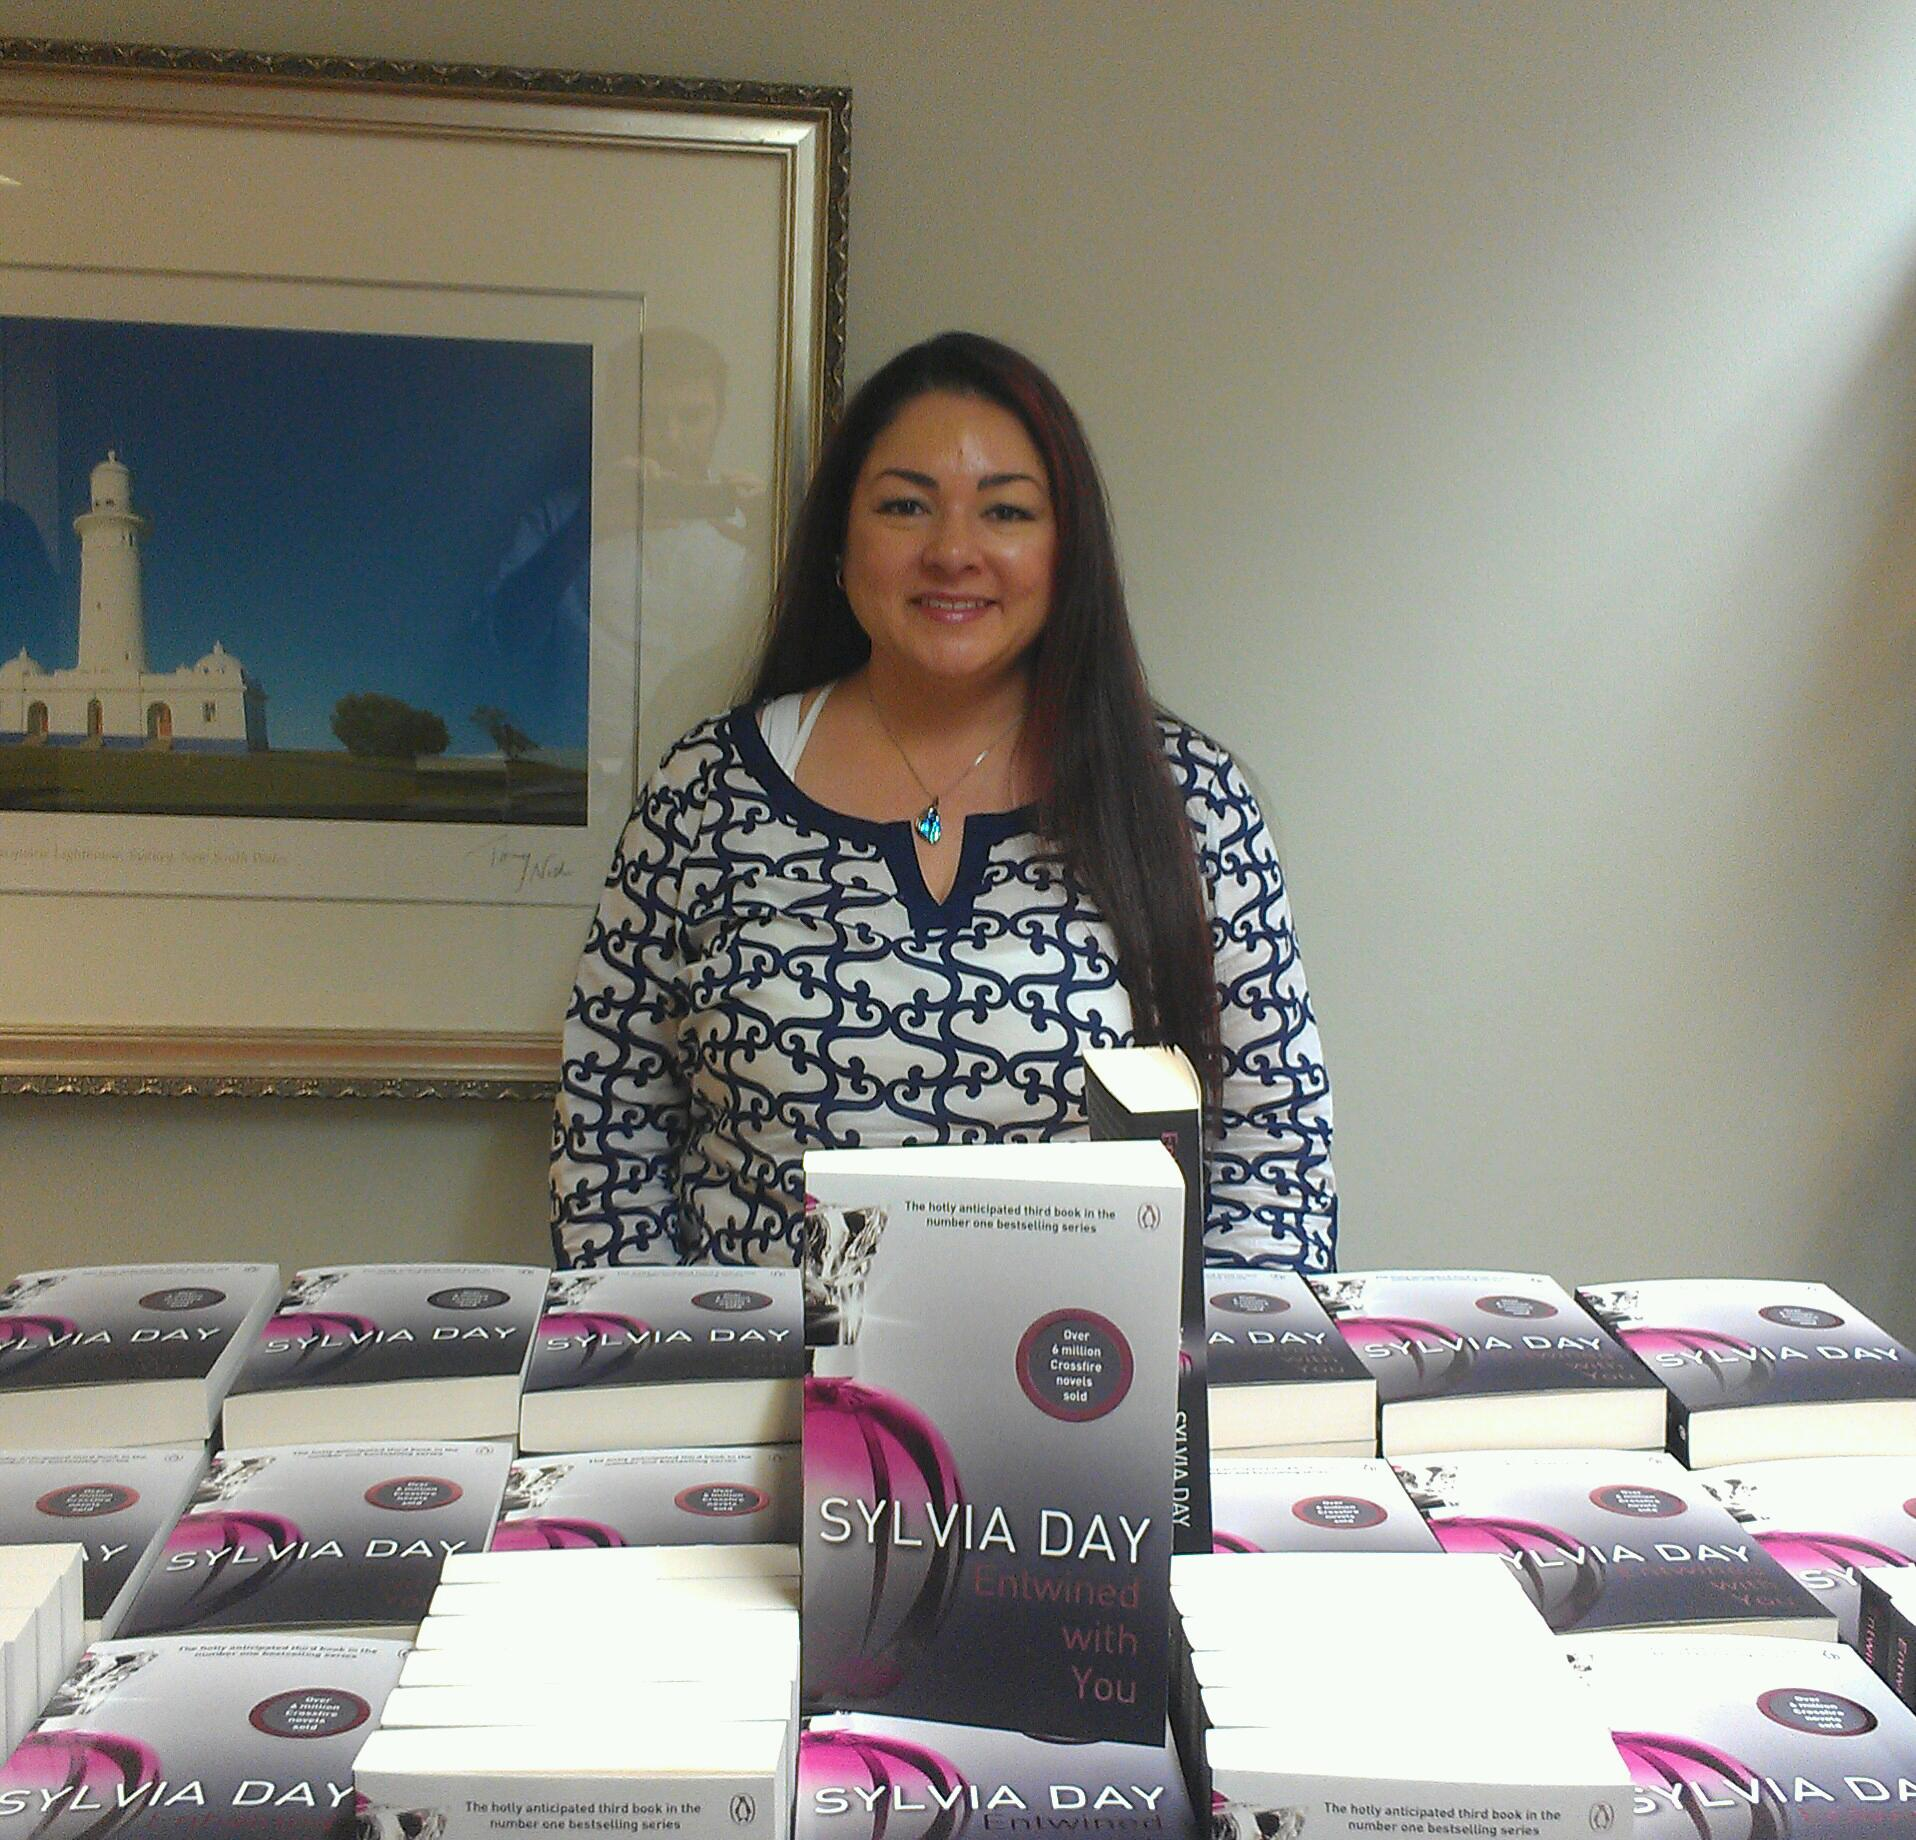 Sylvia Day at Booktopia with a huge pile of Entwined with You